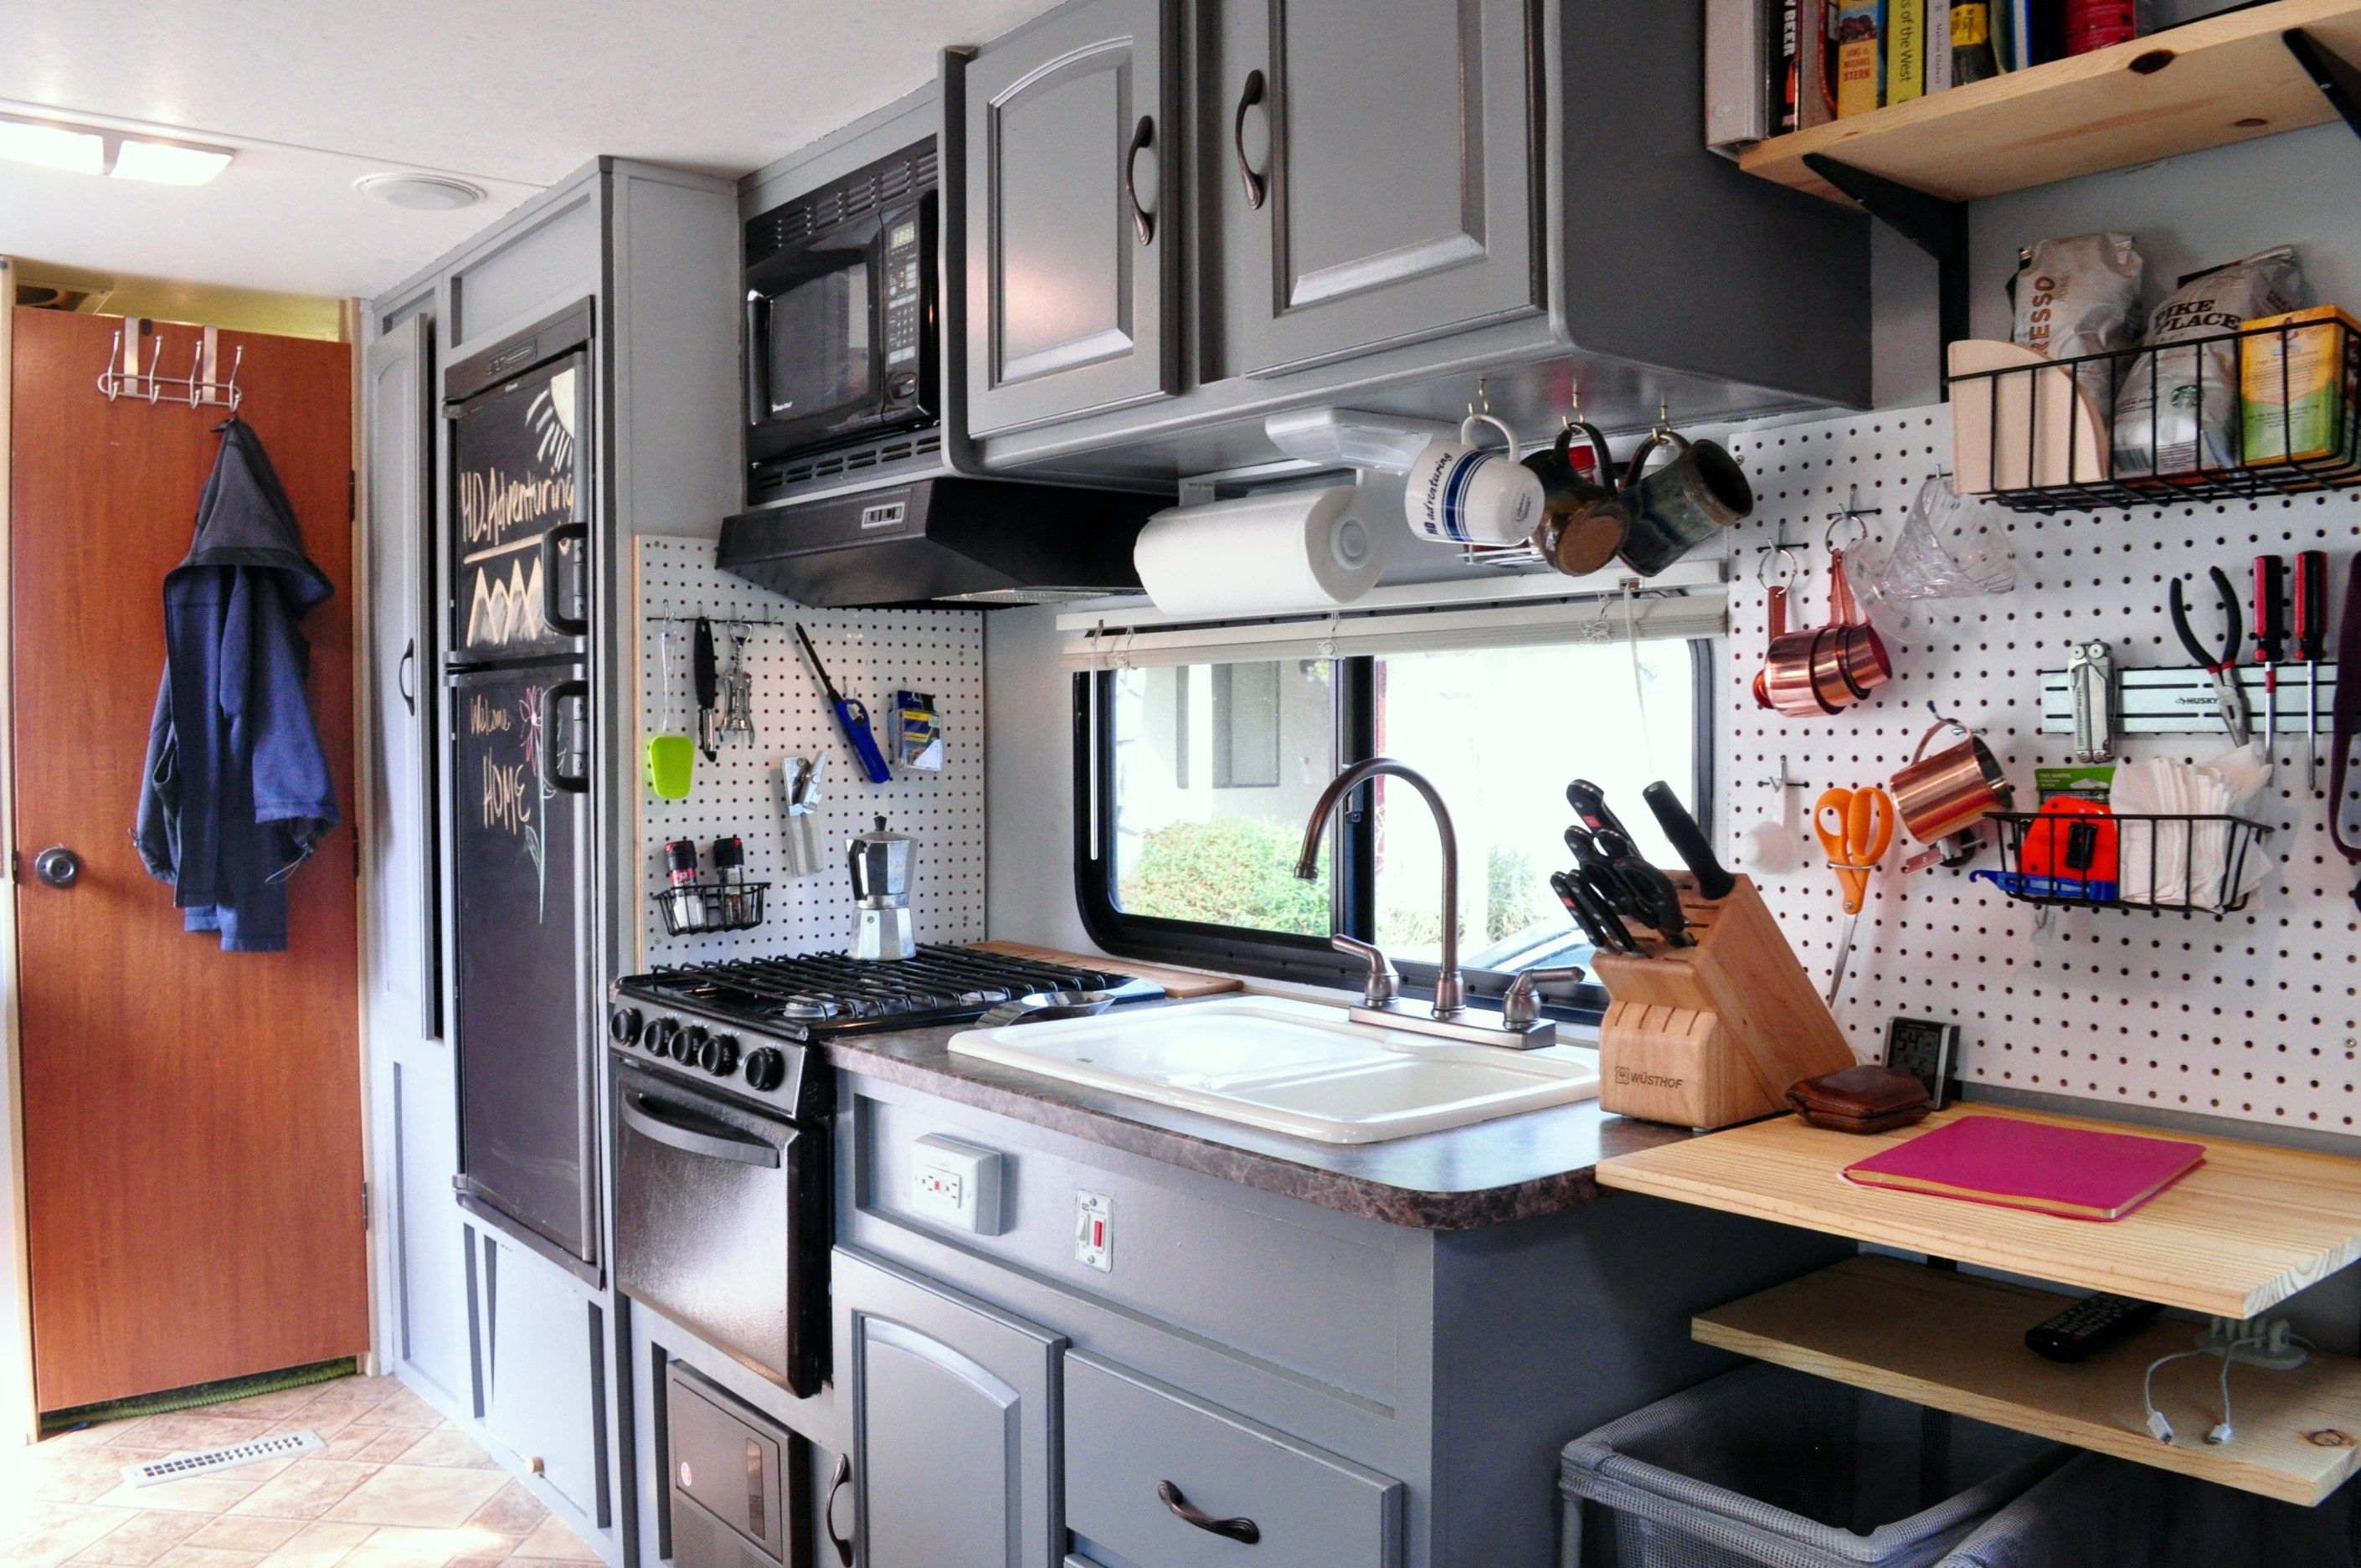 How To Turn An Rv Into A Tiny House Hd Adventuring Camper Interior Design Camper Interior Travel Trailer Remodel